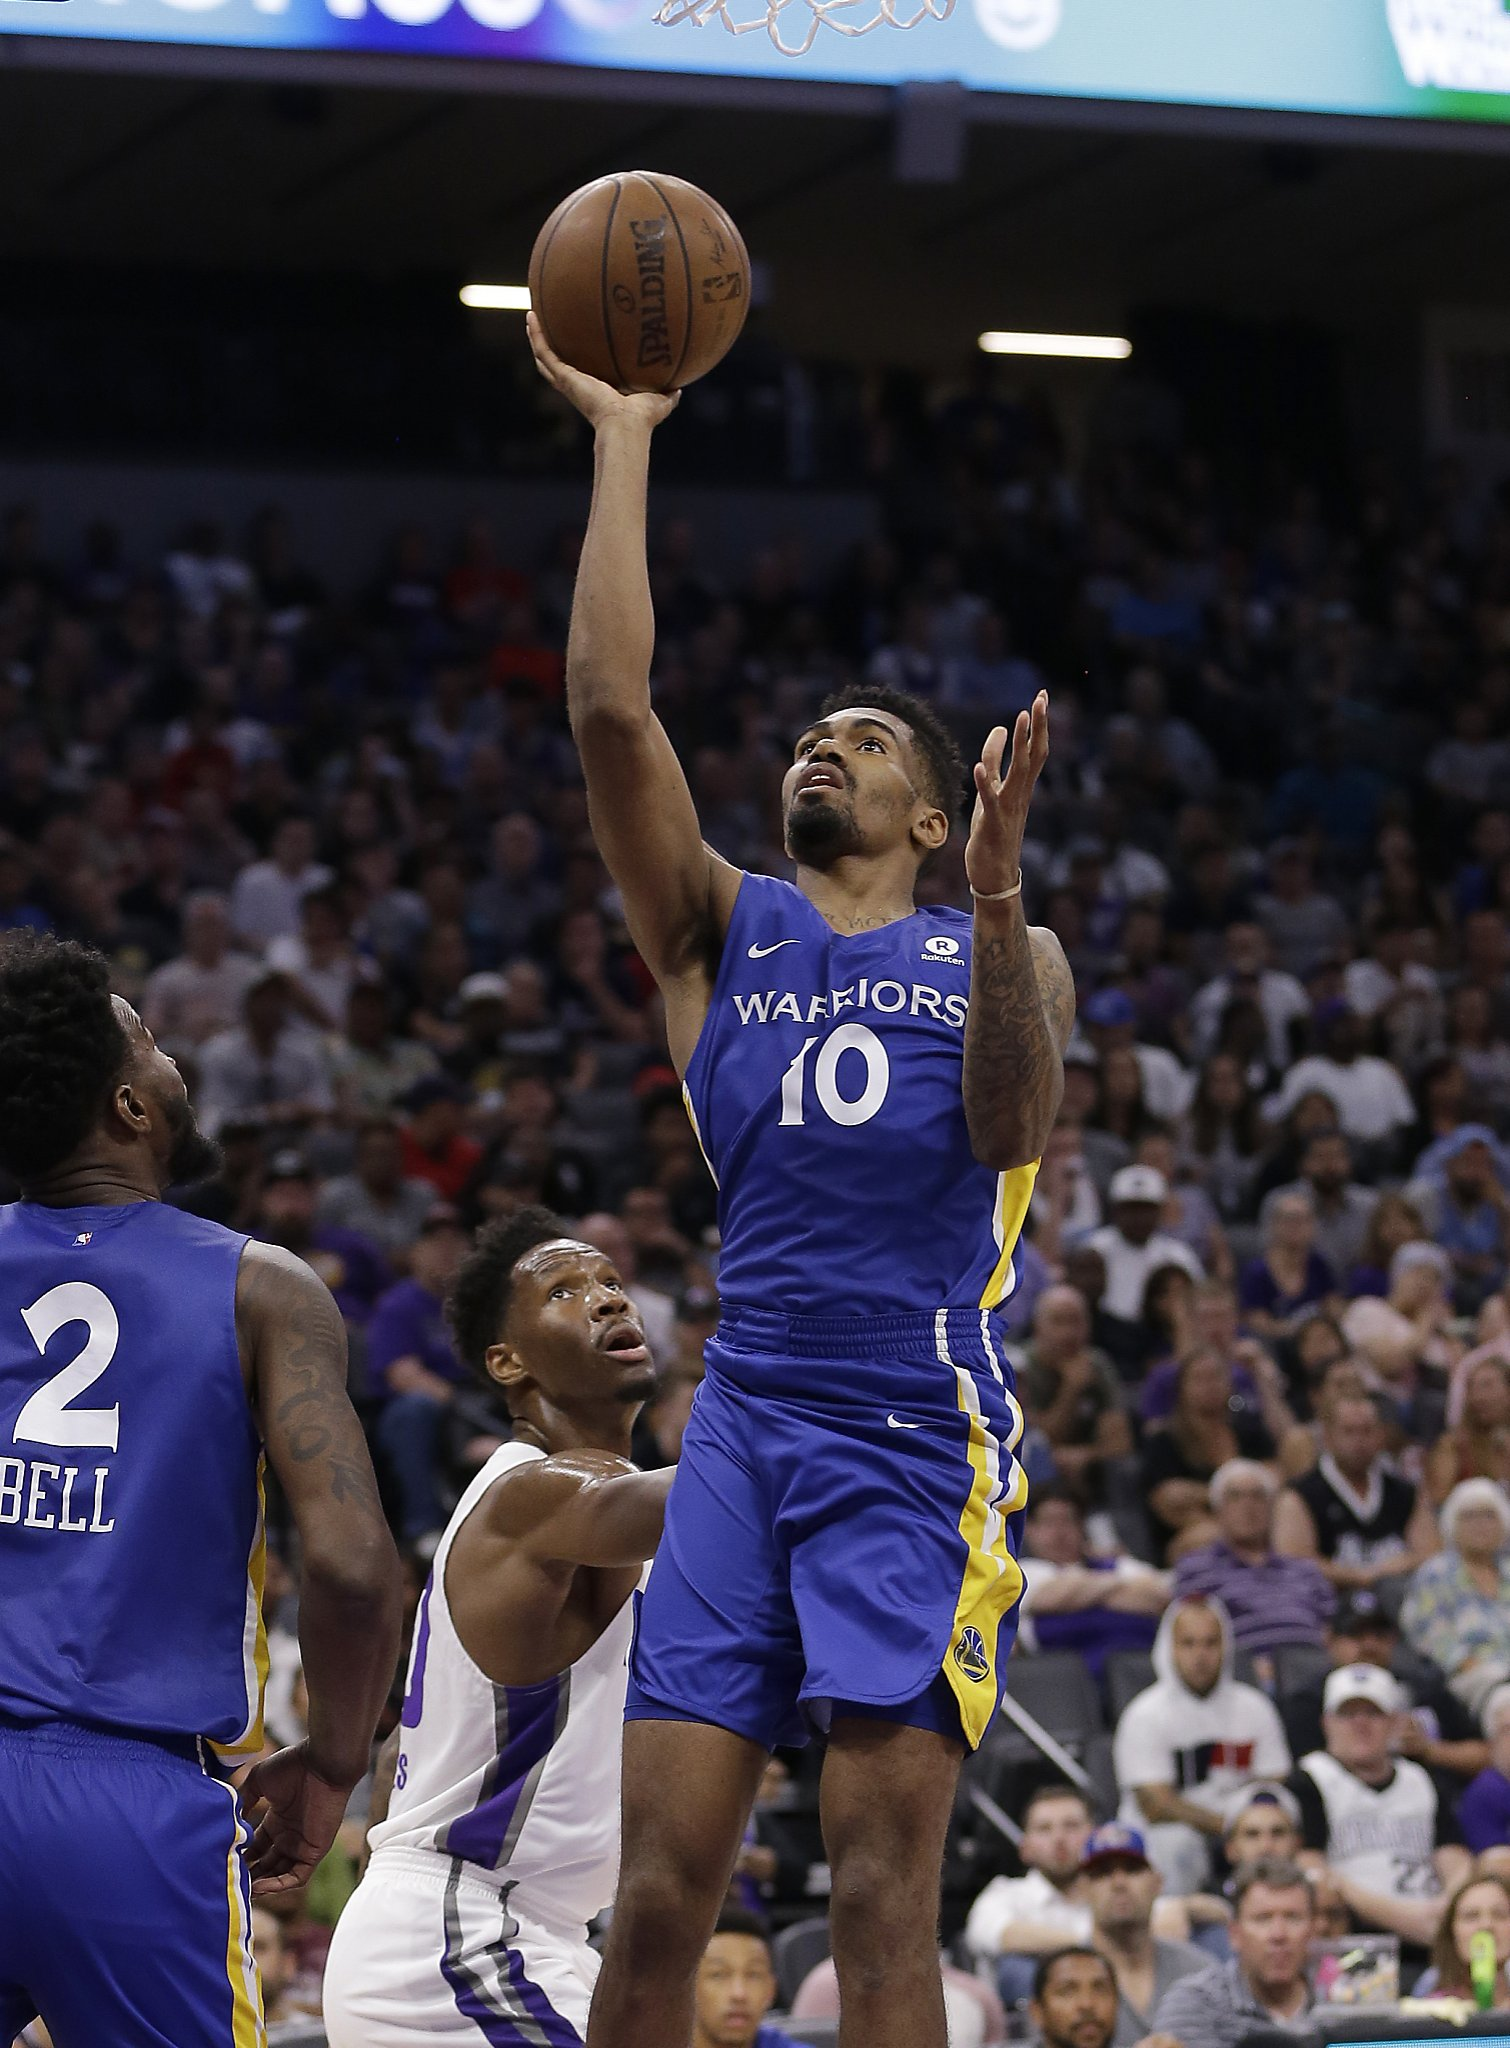 f1c464a4e320 Warriors  Jacob Evans makes solid summer-league debut - SFChronicle.com